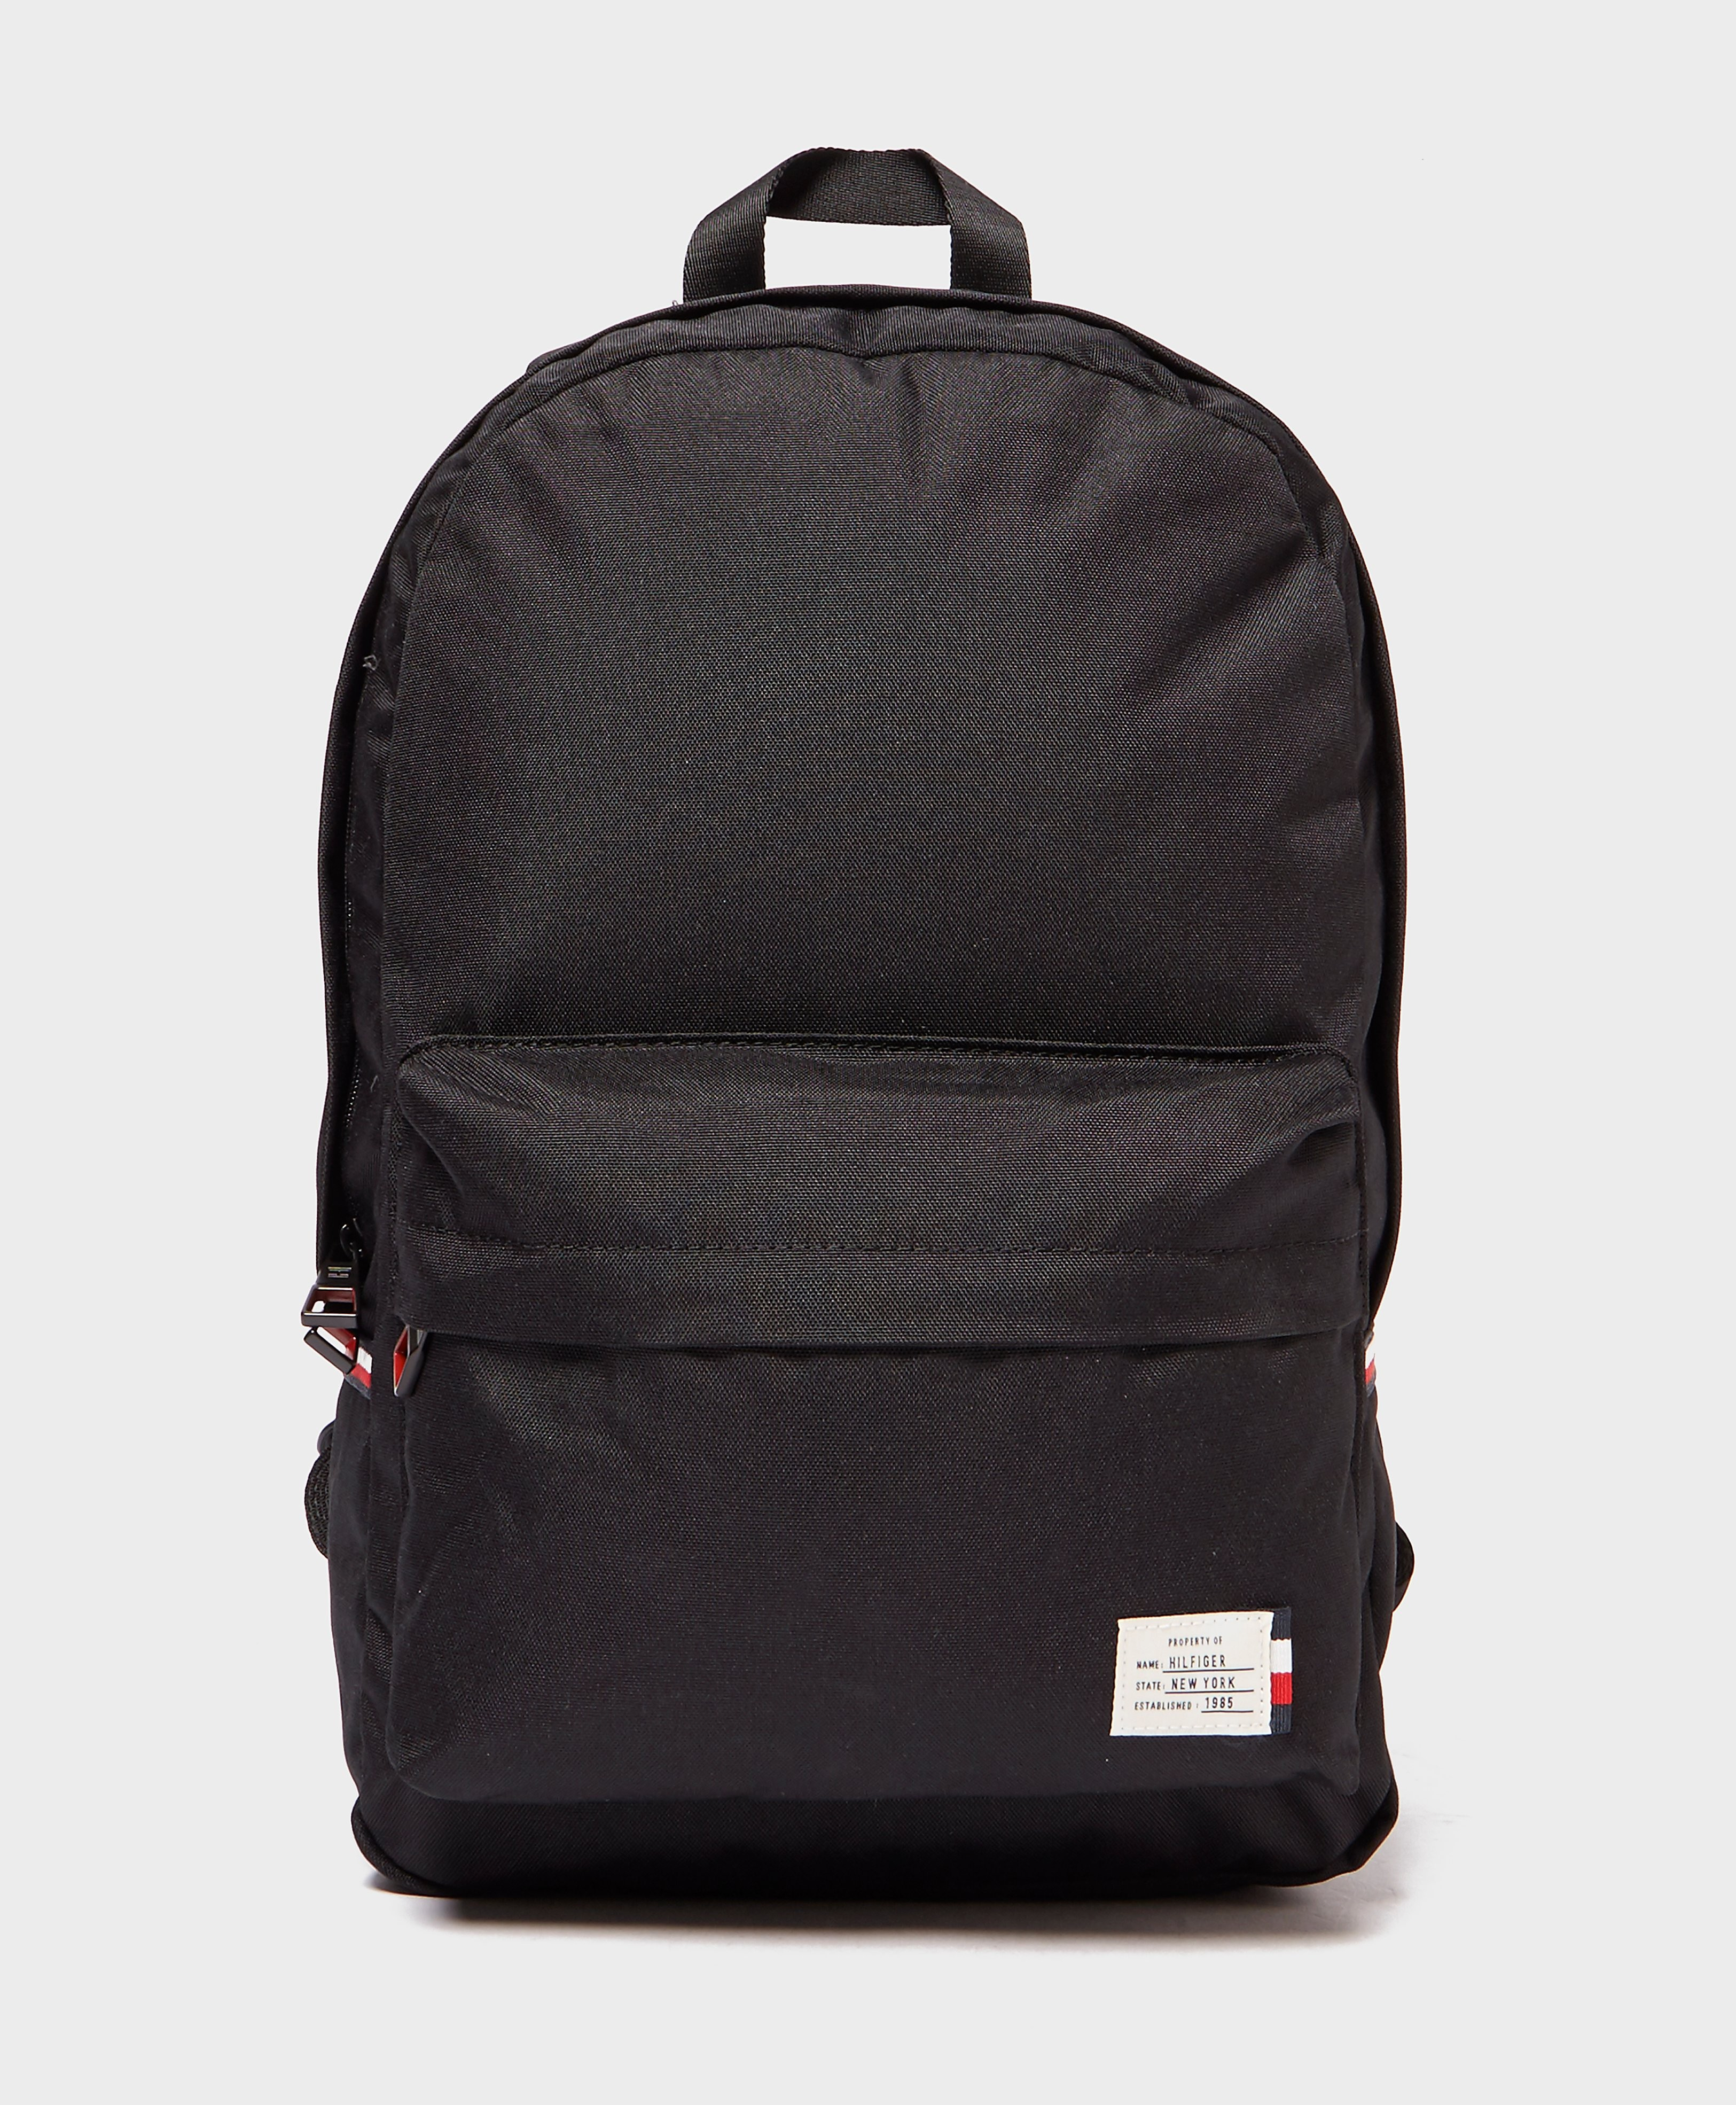 Tommy Hilfiger Classic Backpack